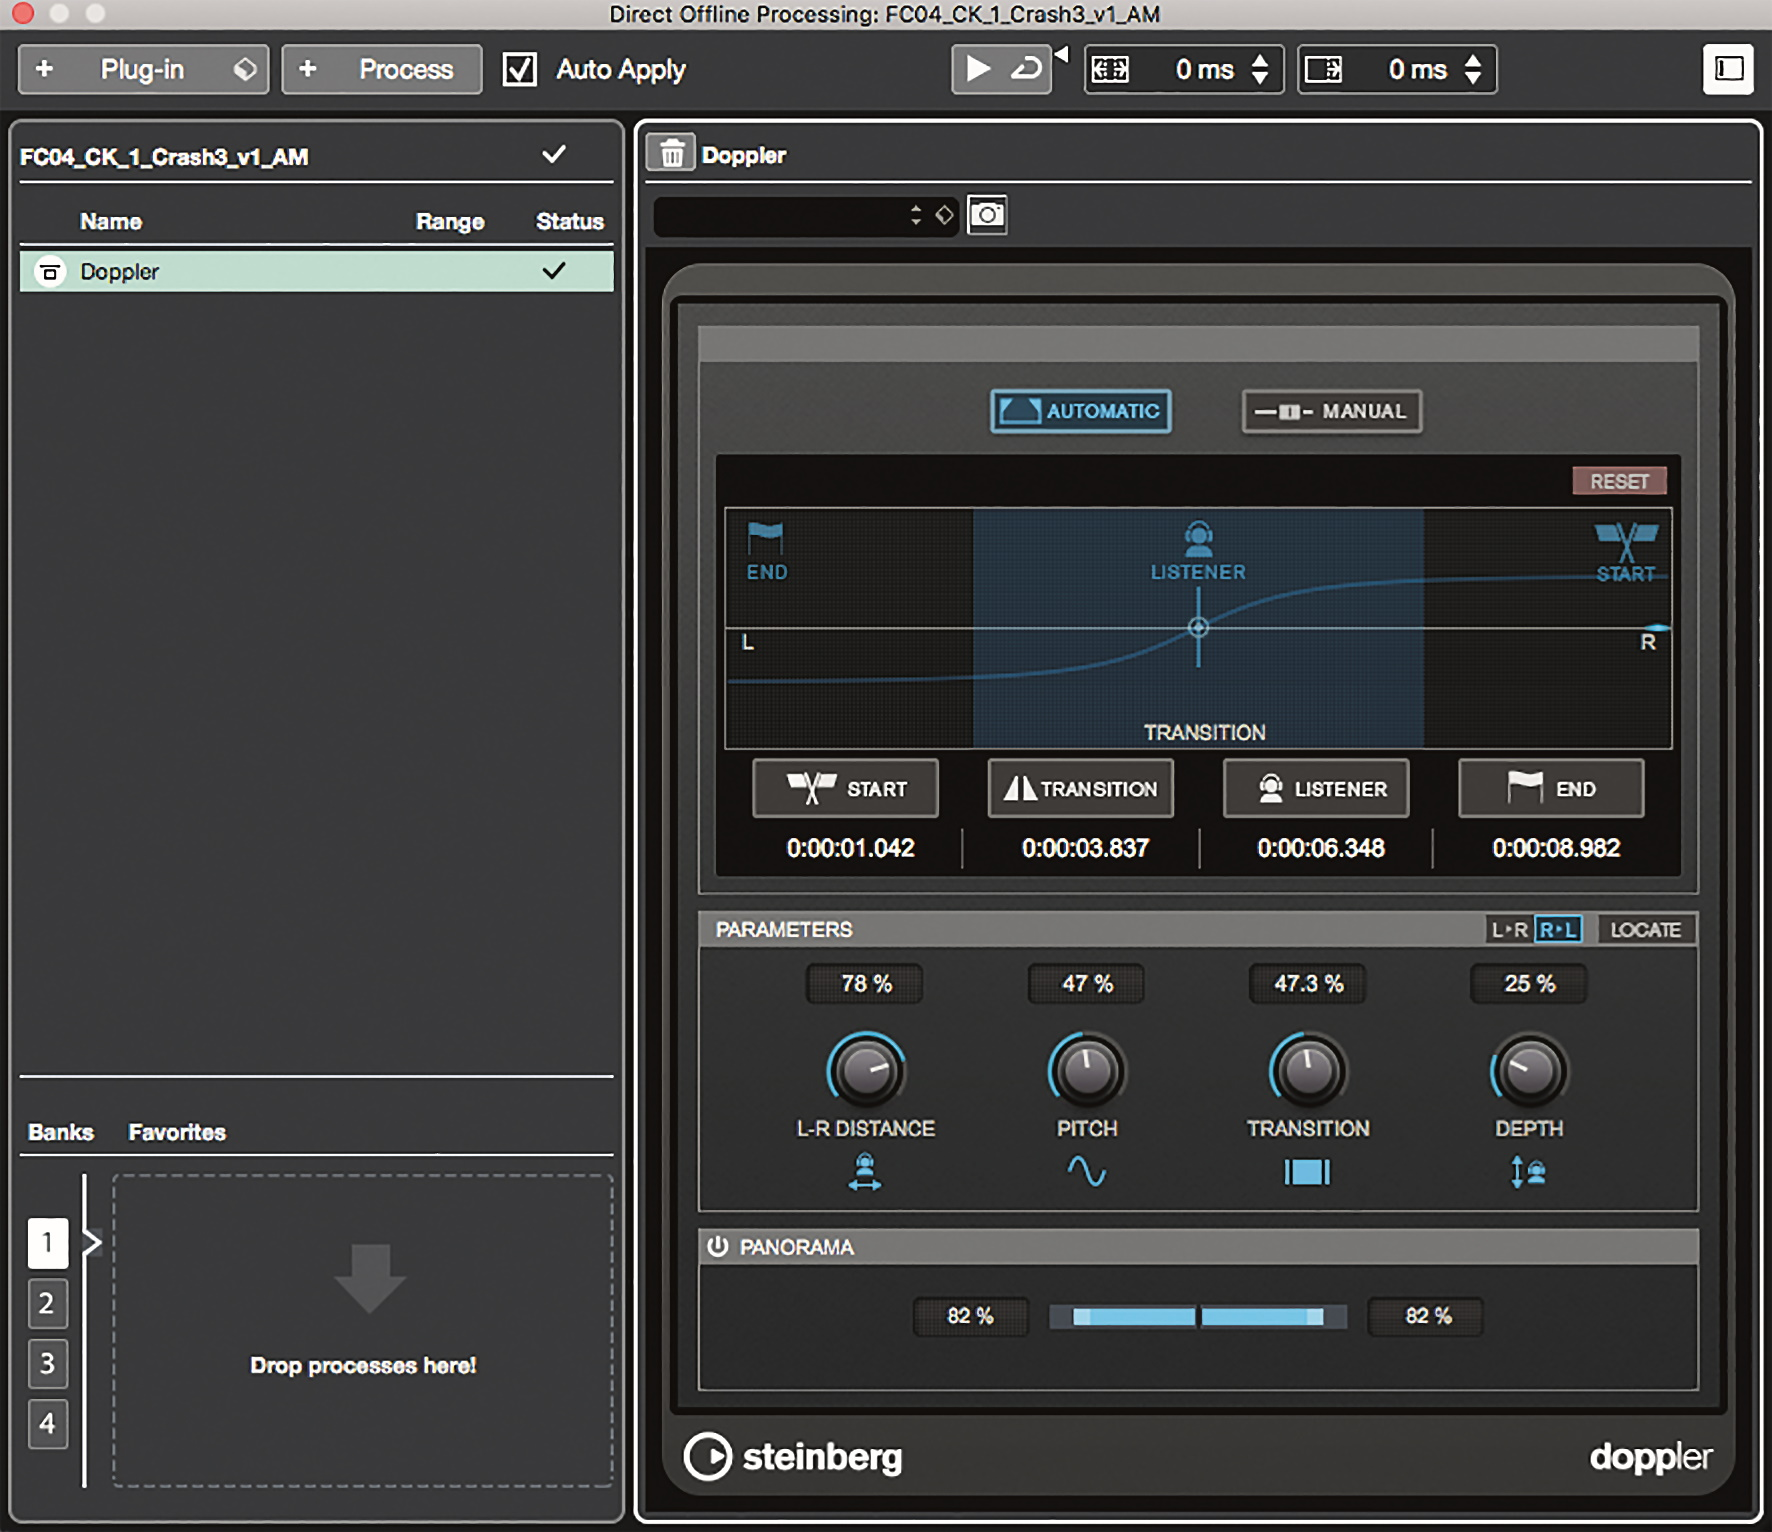 Das Doppler-Effekt-Plug-in im Direct Online Processing und Auto Mode.